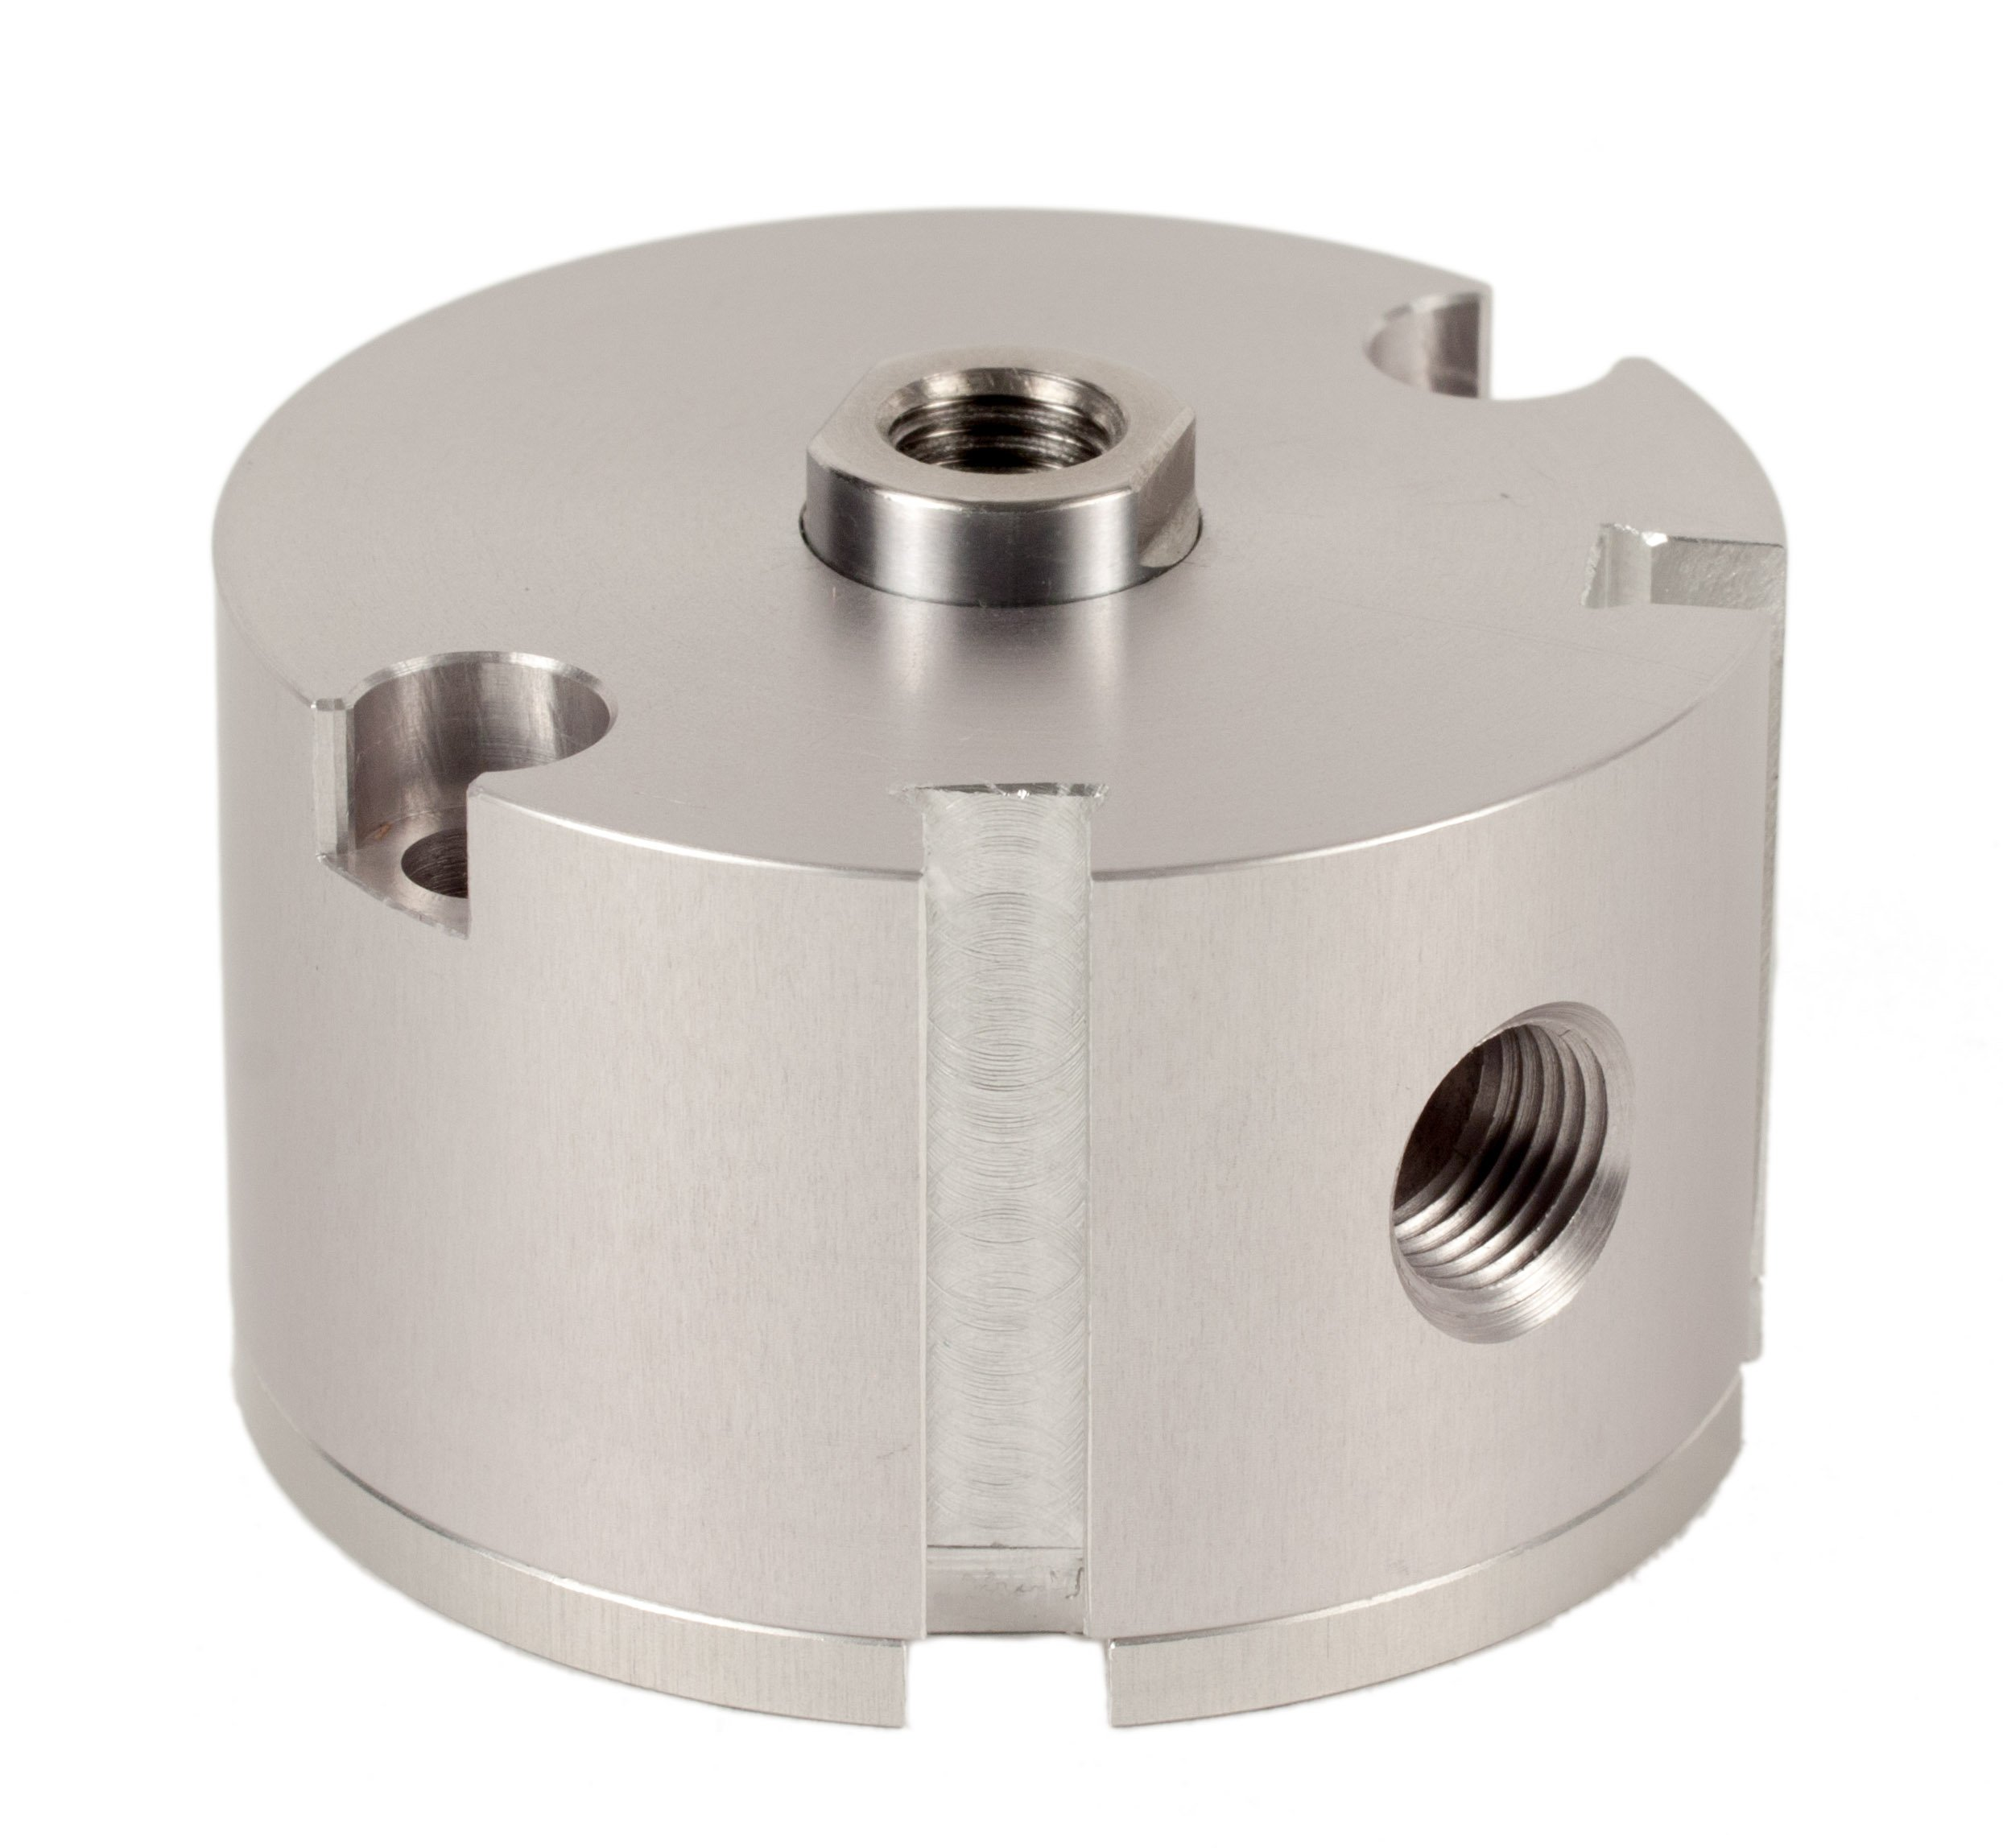 Fabco-Air D-121-X-E Original Pancake Cylinder, Double Acting, Maximum Pressure of 250 PSI, Switch Ready with Magnet, 1-1/8'' Bore Diameter x 1/2'' Stroke